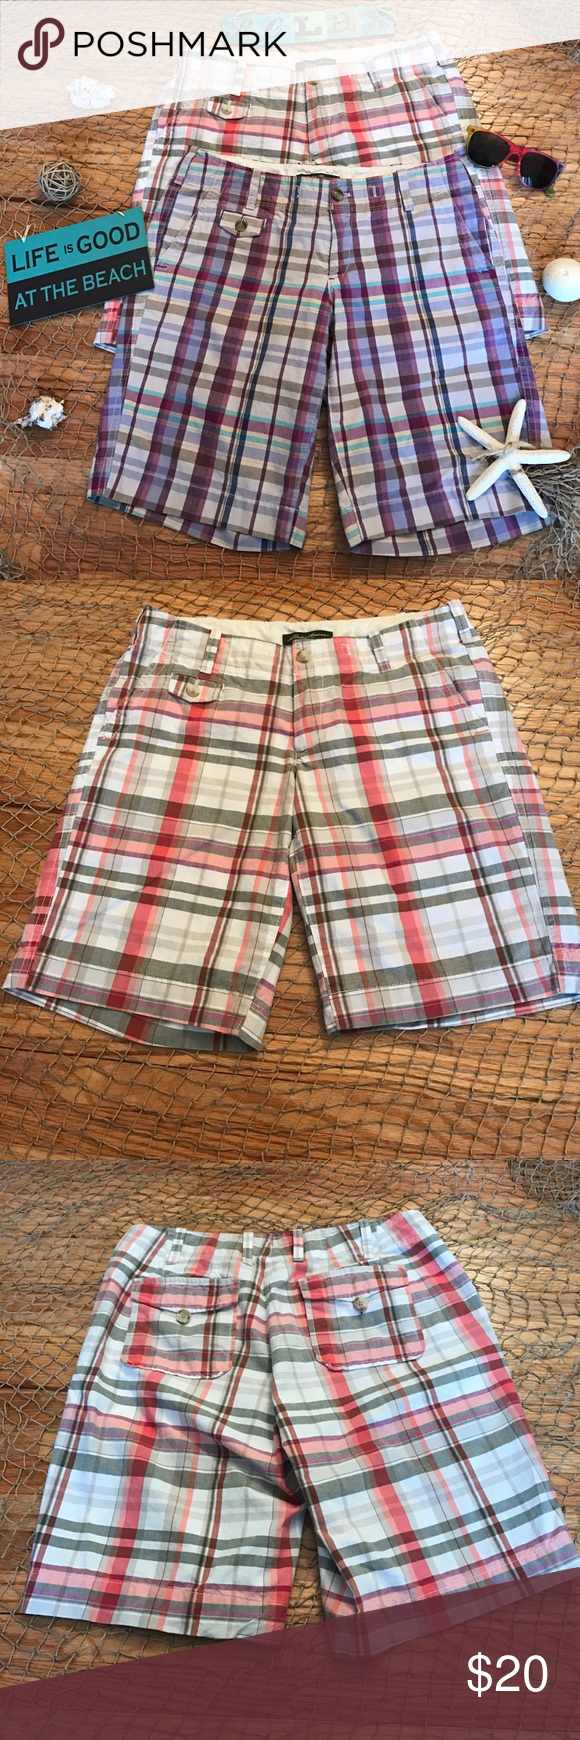 Eddie Bauer Short Bundle Just In Time For Summer Must Have Short Bundle From Eddie Bauer! Size:4. EUC. Multicolored Plaid designs. Both have belt loops, zipper & button closure, 3 front pockets & 2 back pockets. Perfect every day casual shorts, great for vacation! 100% cotton. Machine wash tumble dry. NO TRADES. Eddie Bauer Shorts